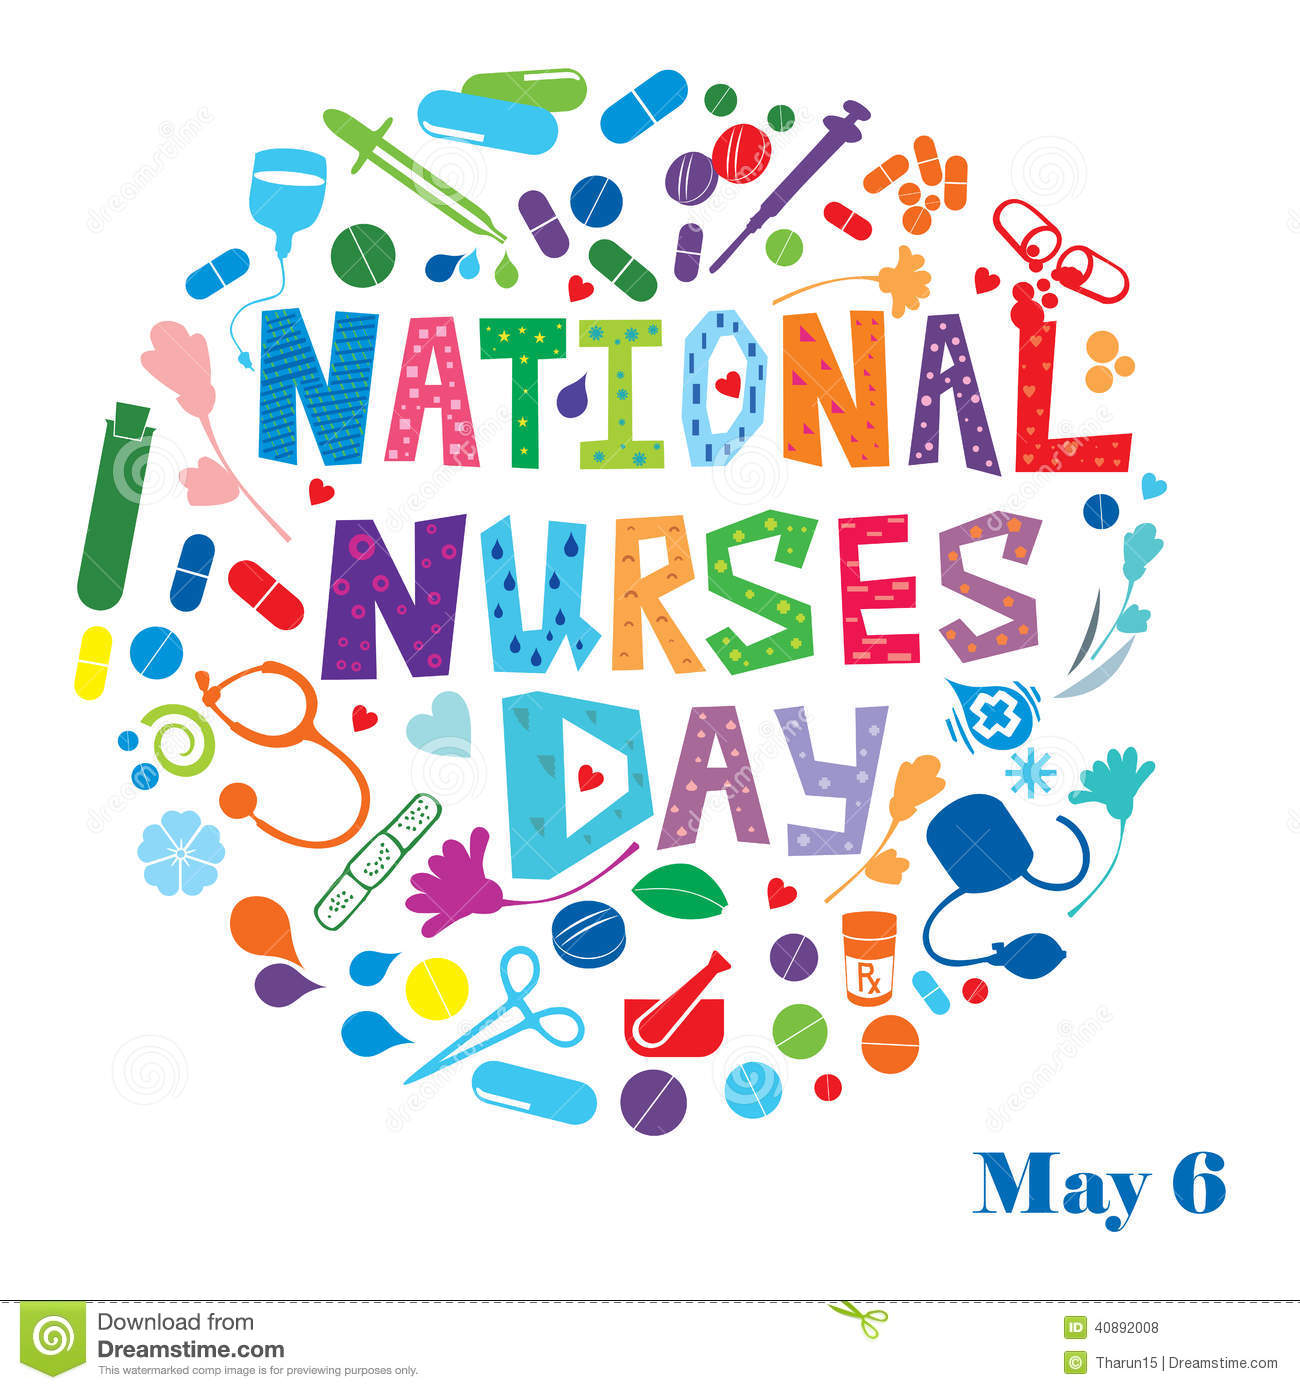 A Cute Wish On Nurses Day. Free Nurses Day eCards, Greeting Cards ...